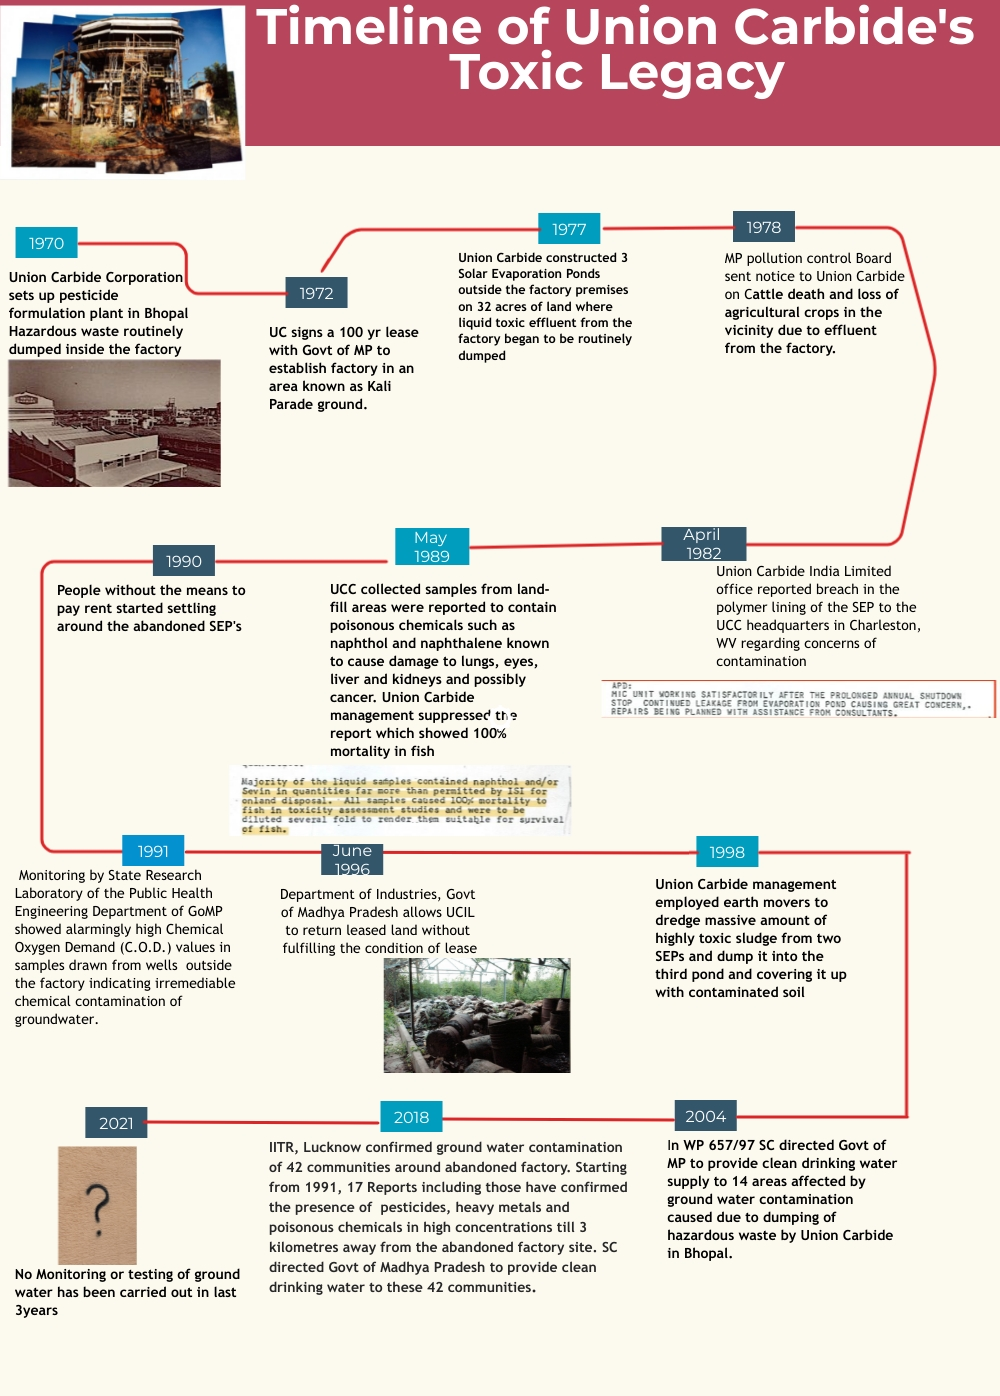 Graphic image showing a timeline starting 1970 show how Union Carbide Corporation handled hazardous chemical waste